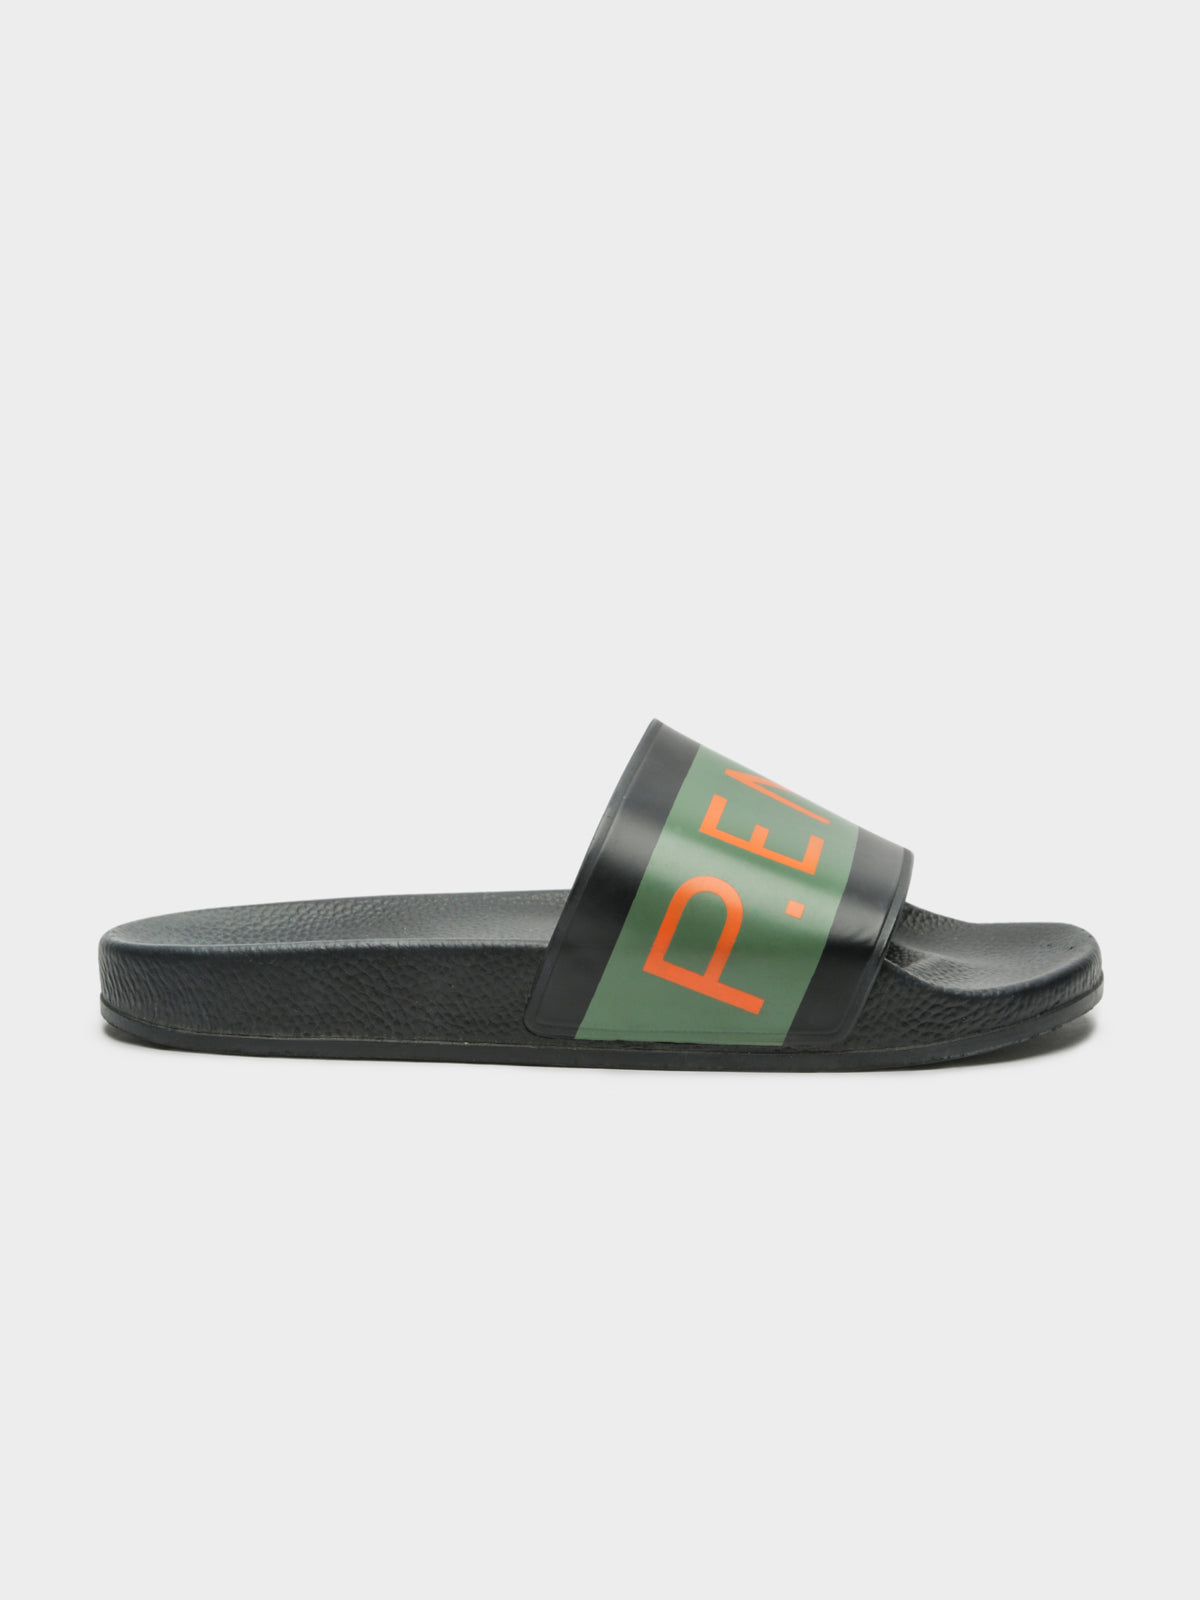 Womens P.E. Nation 1908 Big Logo Slides in Khaki Green & Black